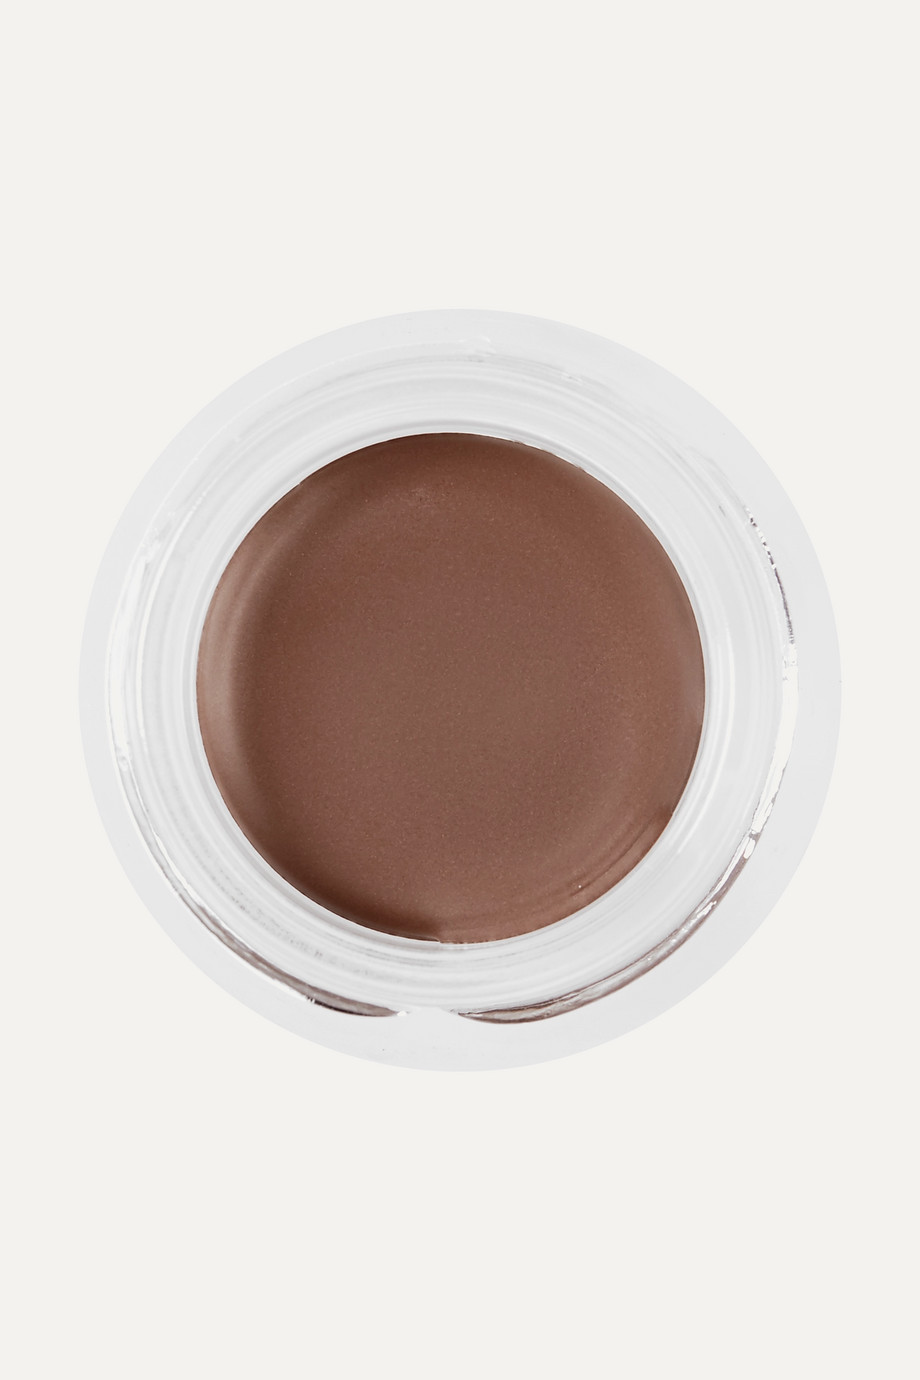 BBB LONDON Brow Sculpting Pomade - Indian Chocolate